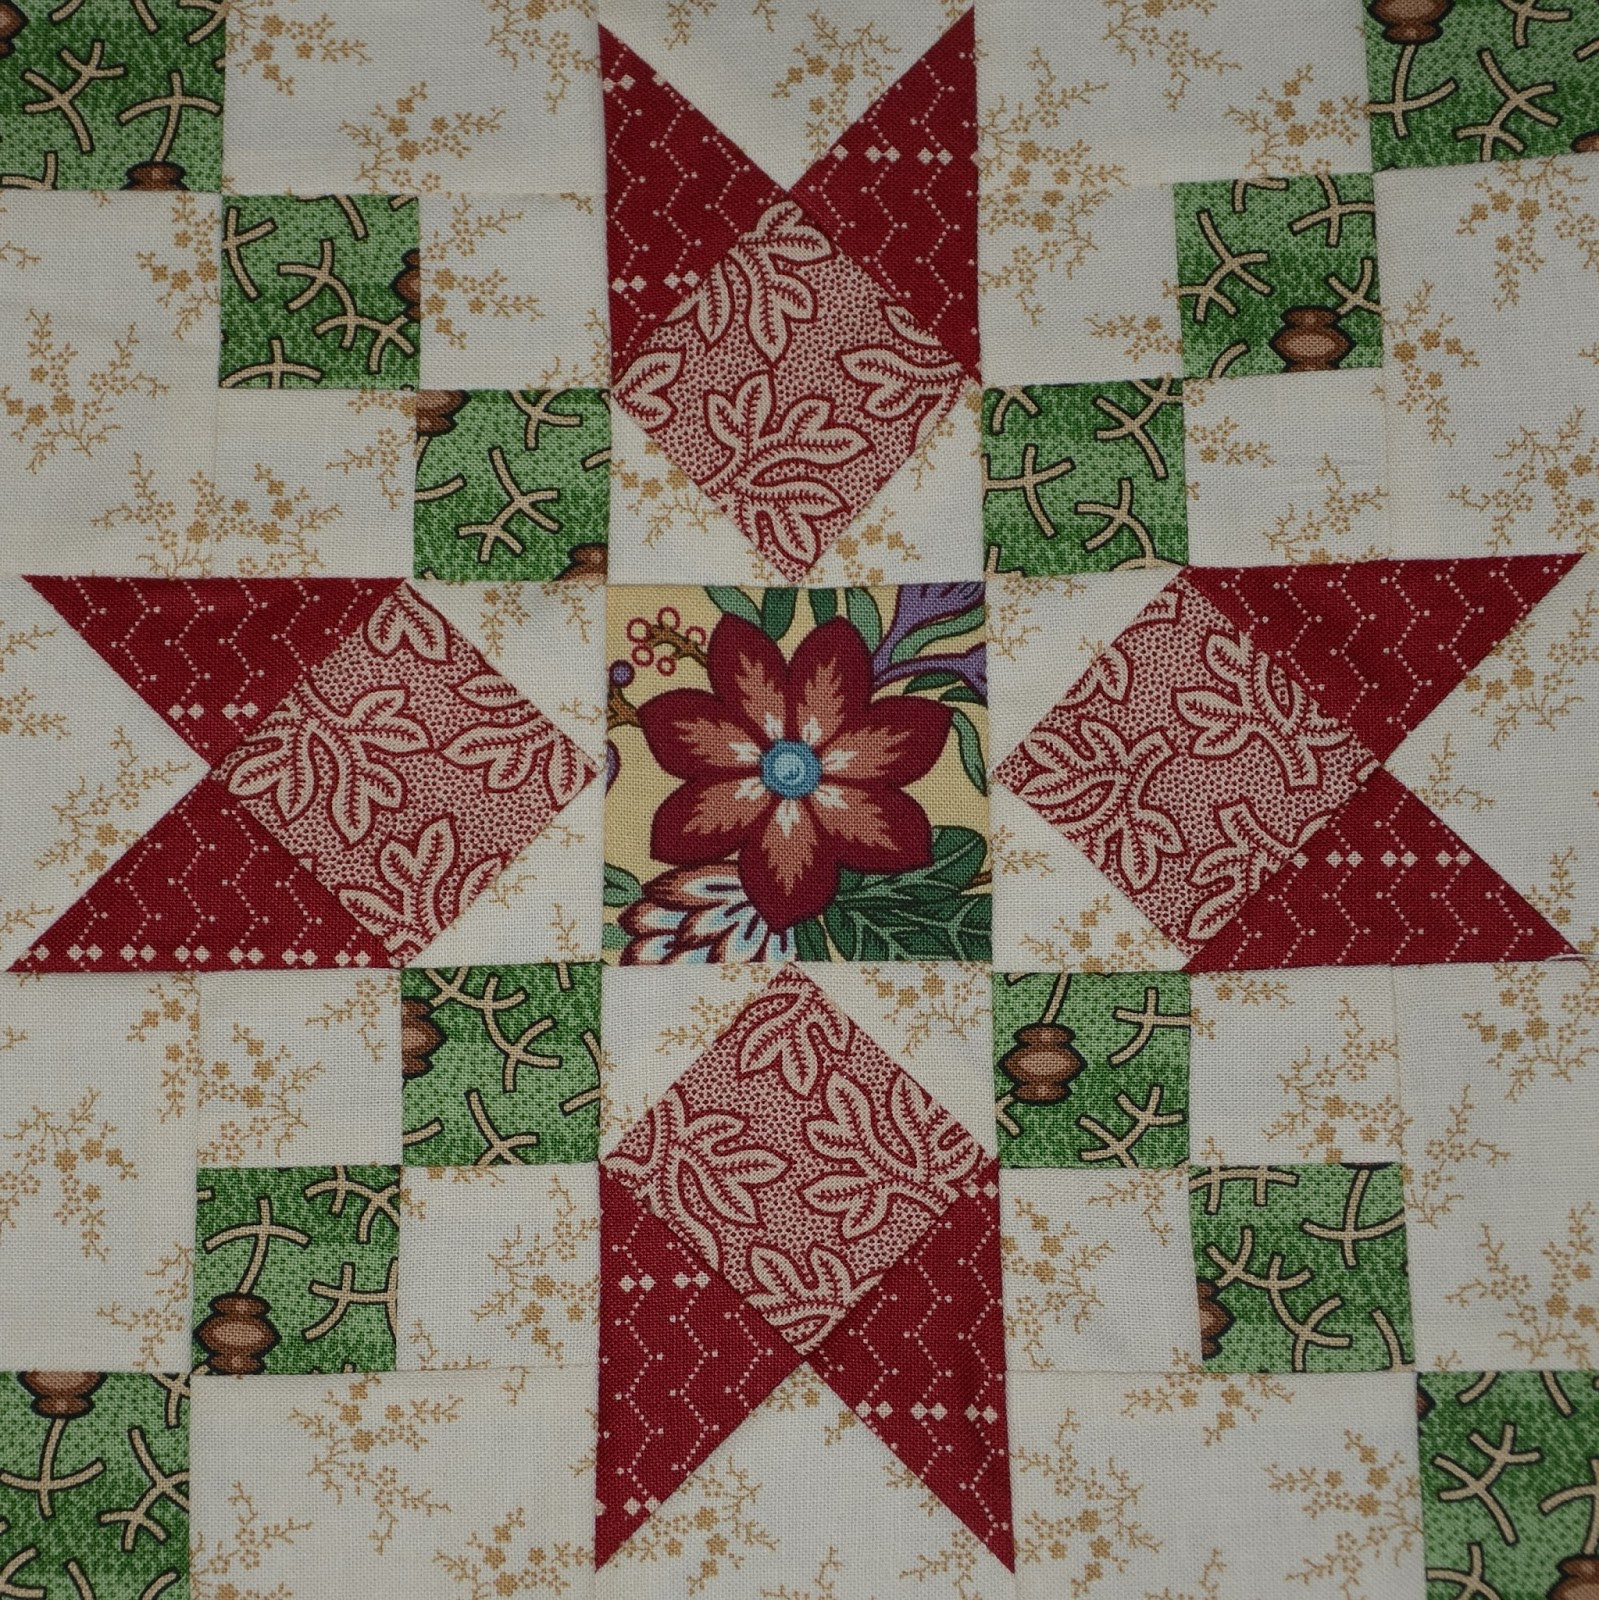 Heritage and quilting